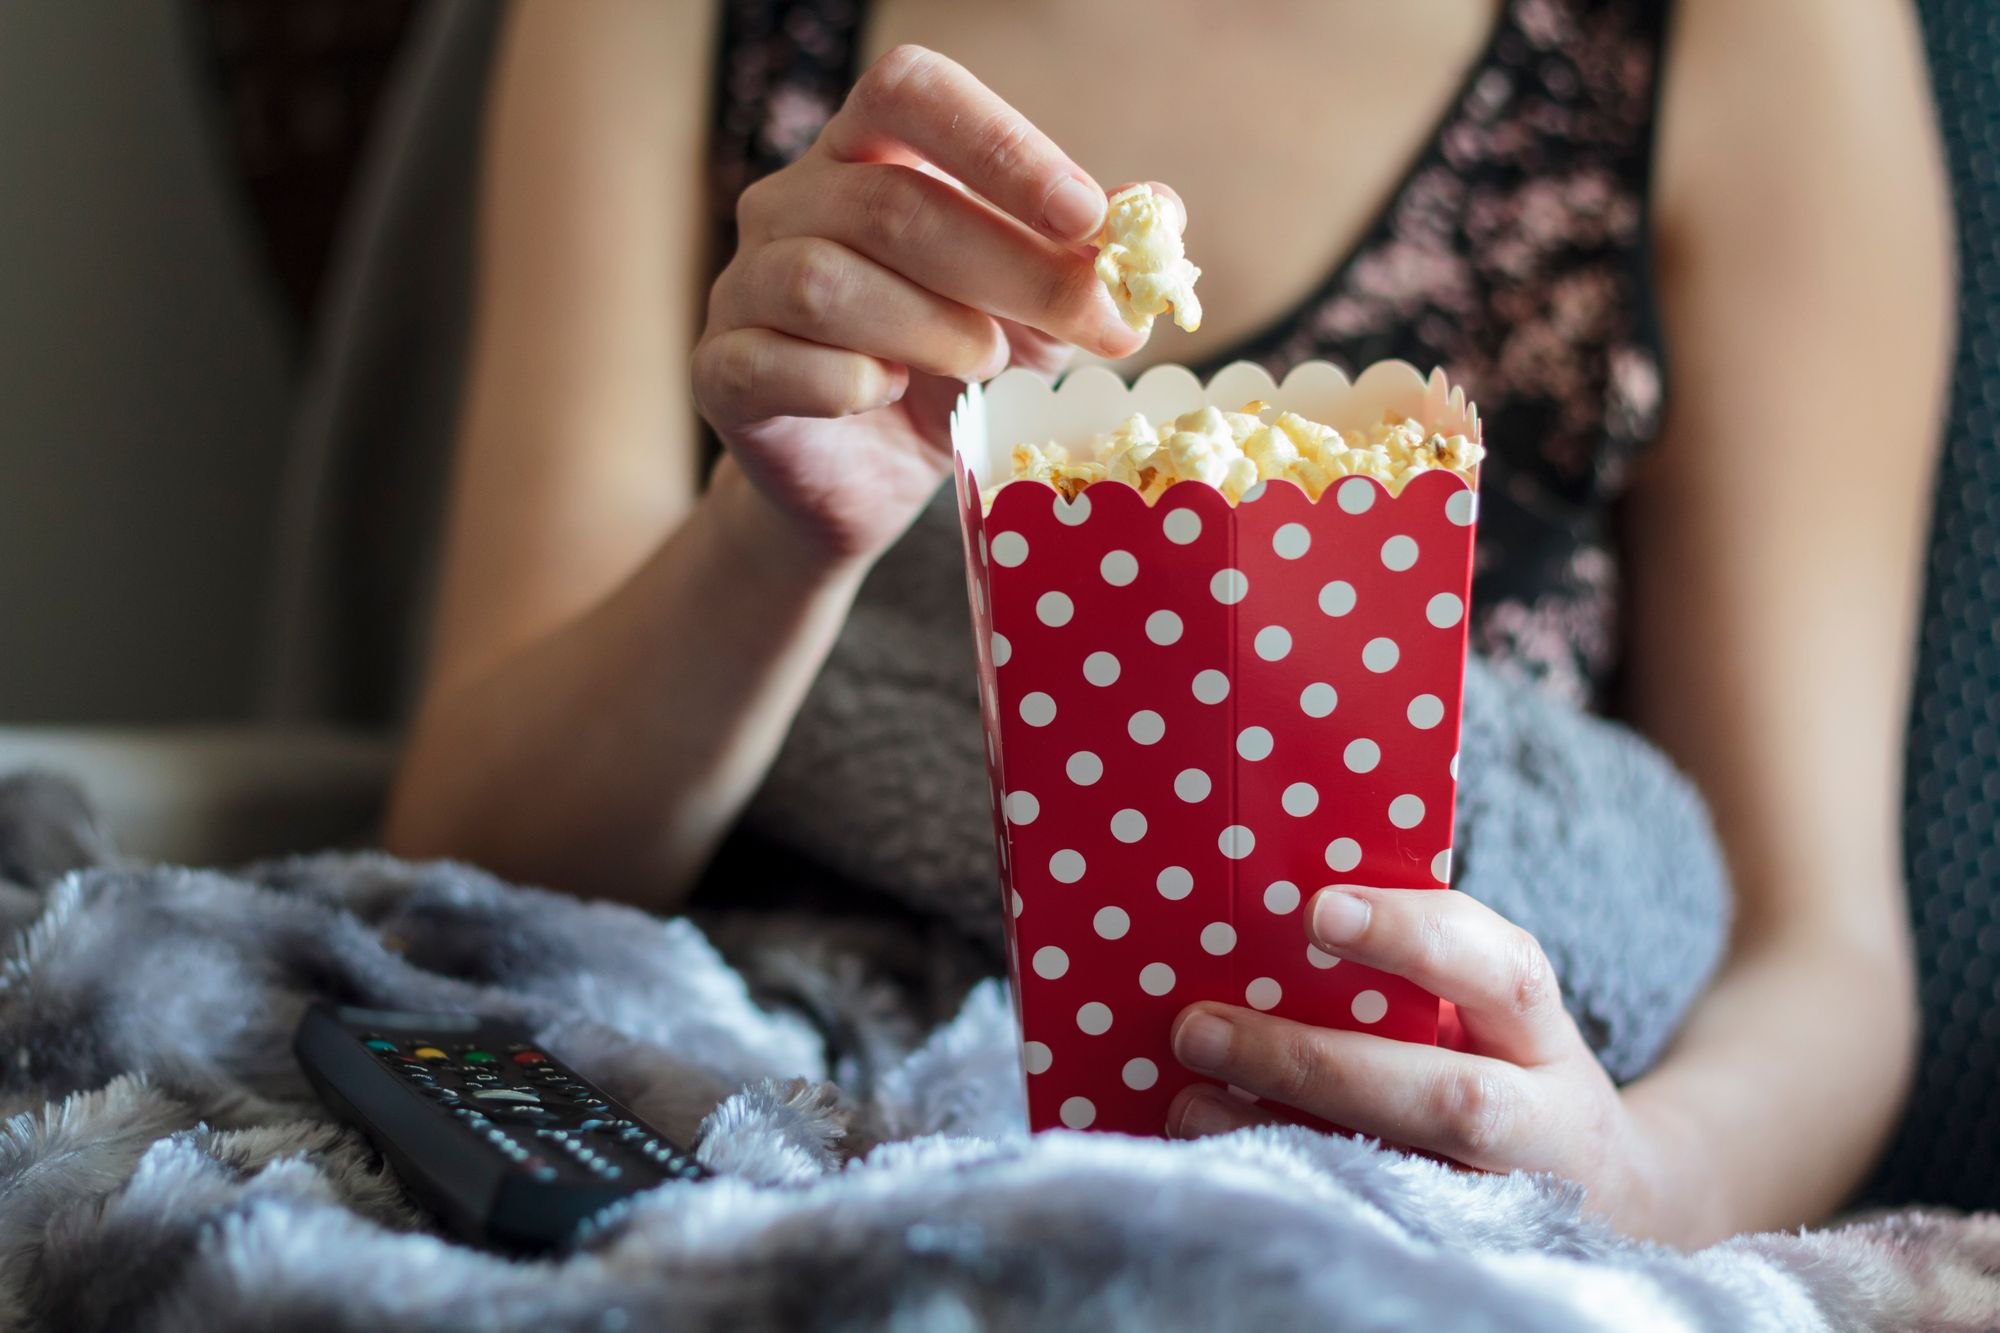 Woman eating popcorn - HomeExchange chain story